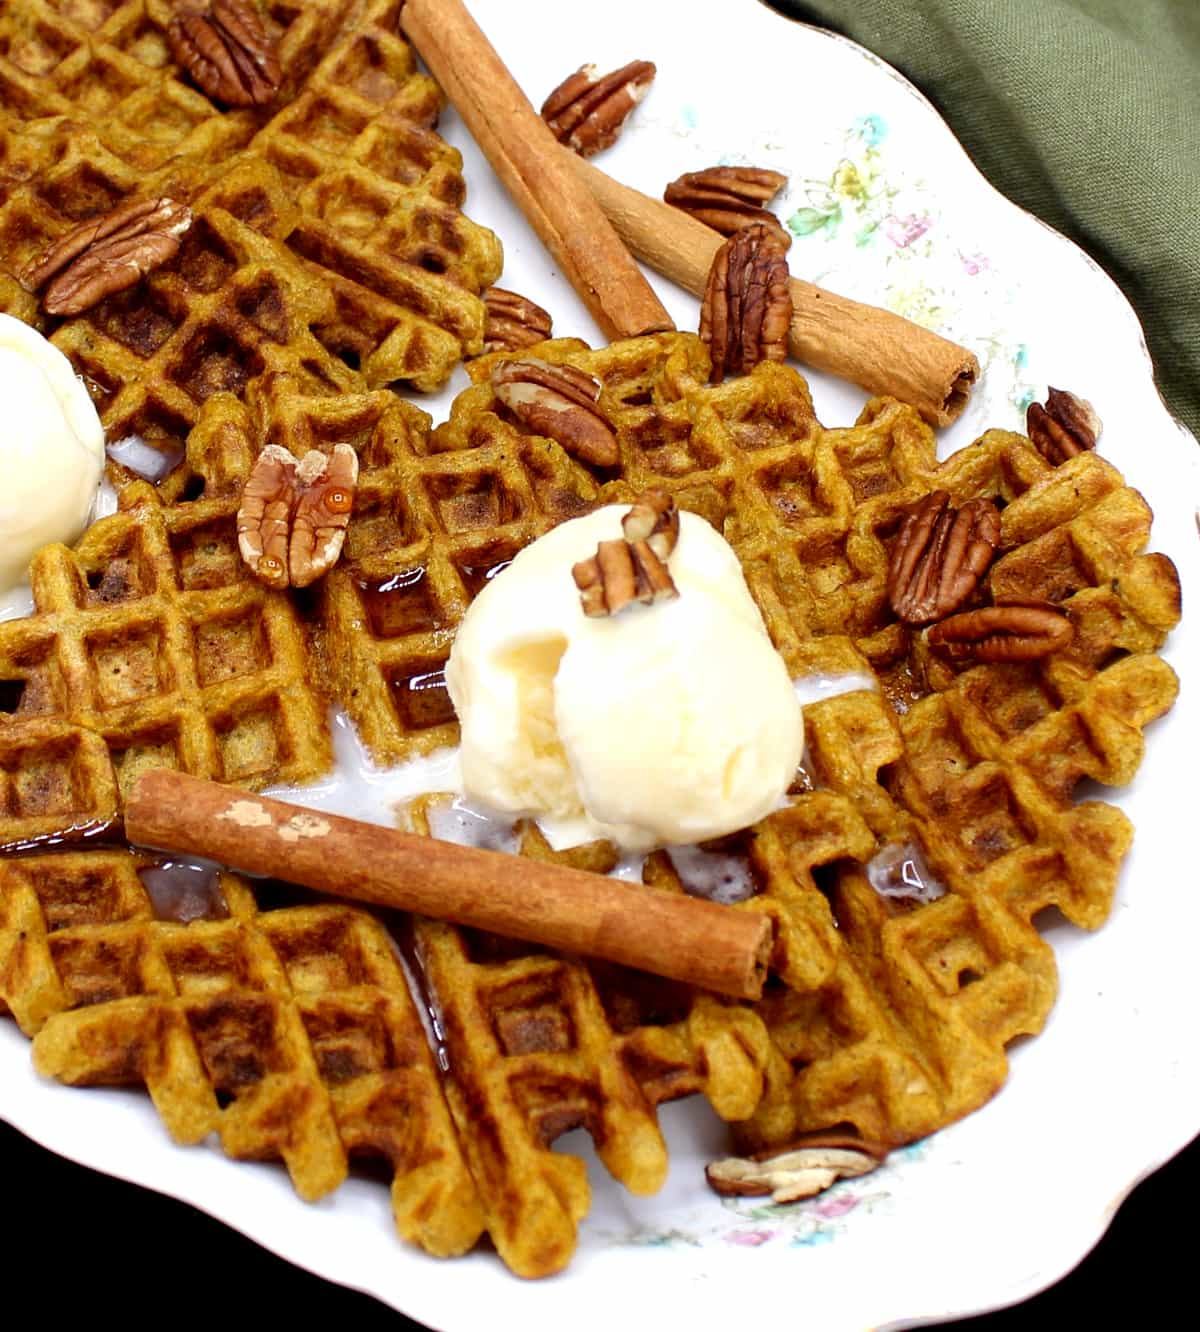 Vegan Sourdough Pumpkin Spice Waffles on a white oval decorative serving dish with a flower pattern. On top of the waffles is vanilla ice cream and sticks of cinnamon and pecans are scattered around.